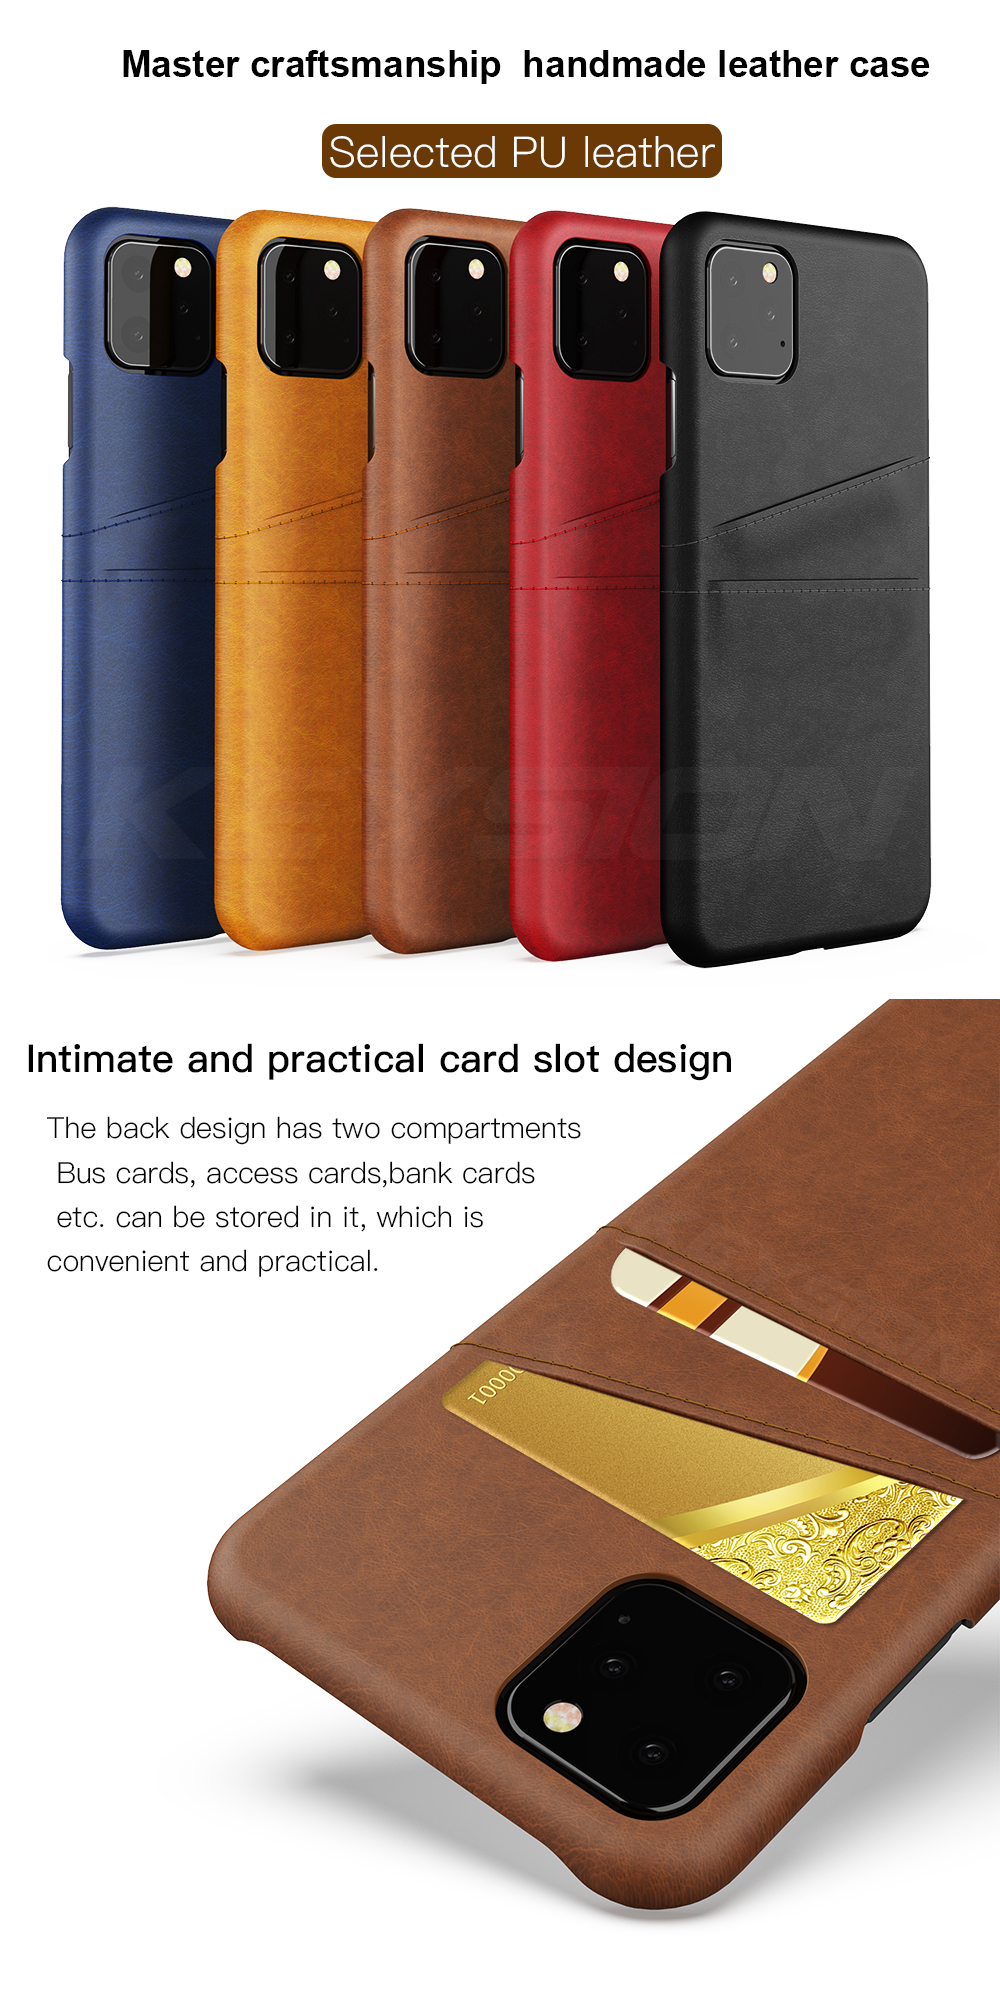 KEYSION Leather Card Pocket Cases for iPhone 11/11 Pro/11 Pro Max 11